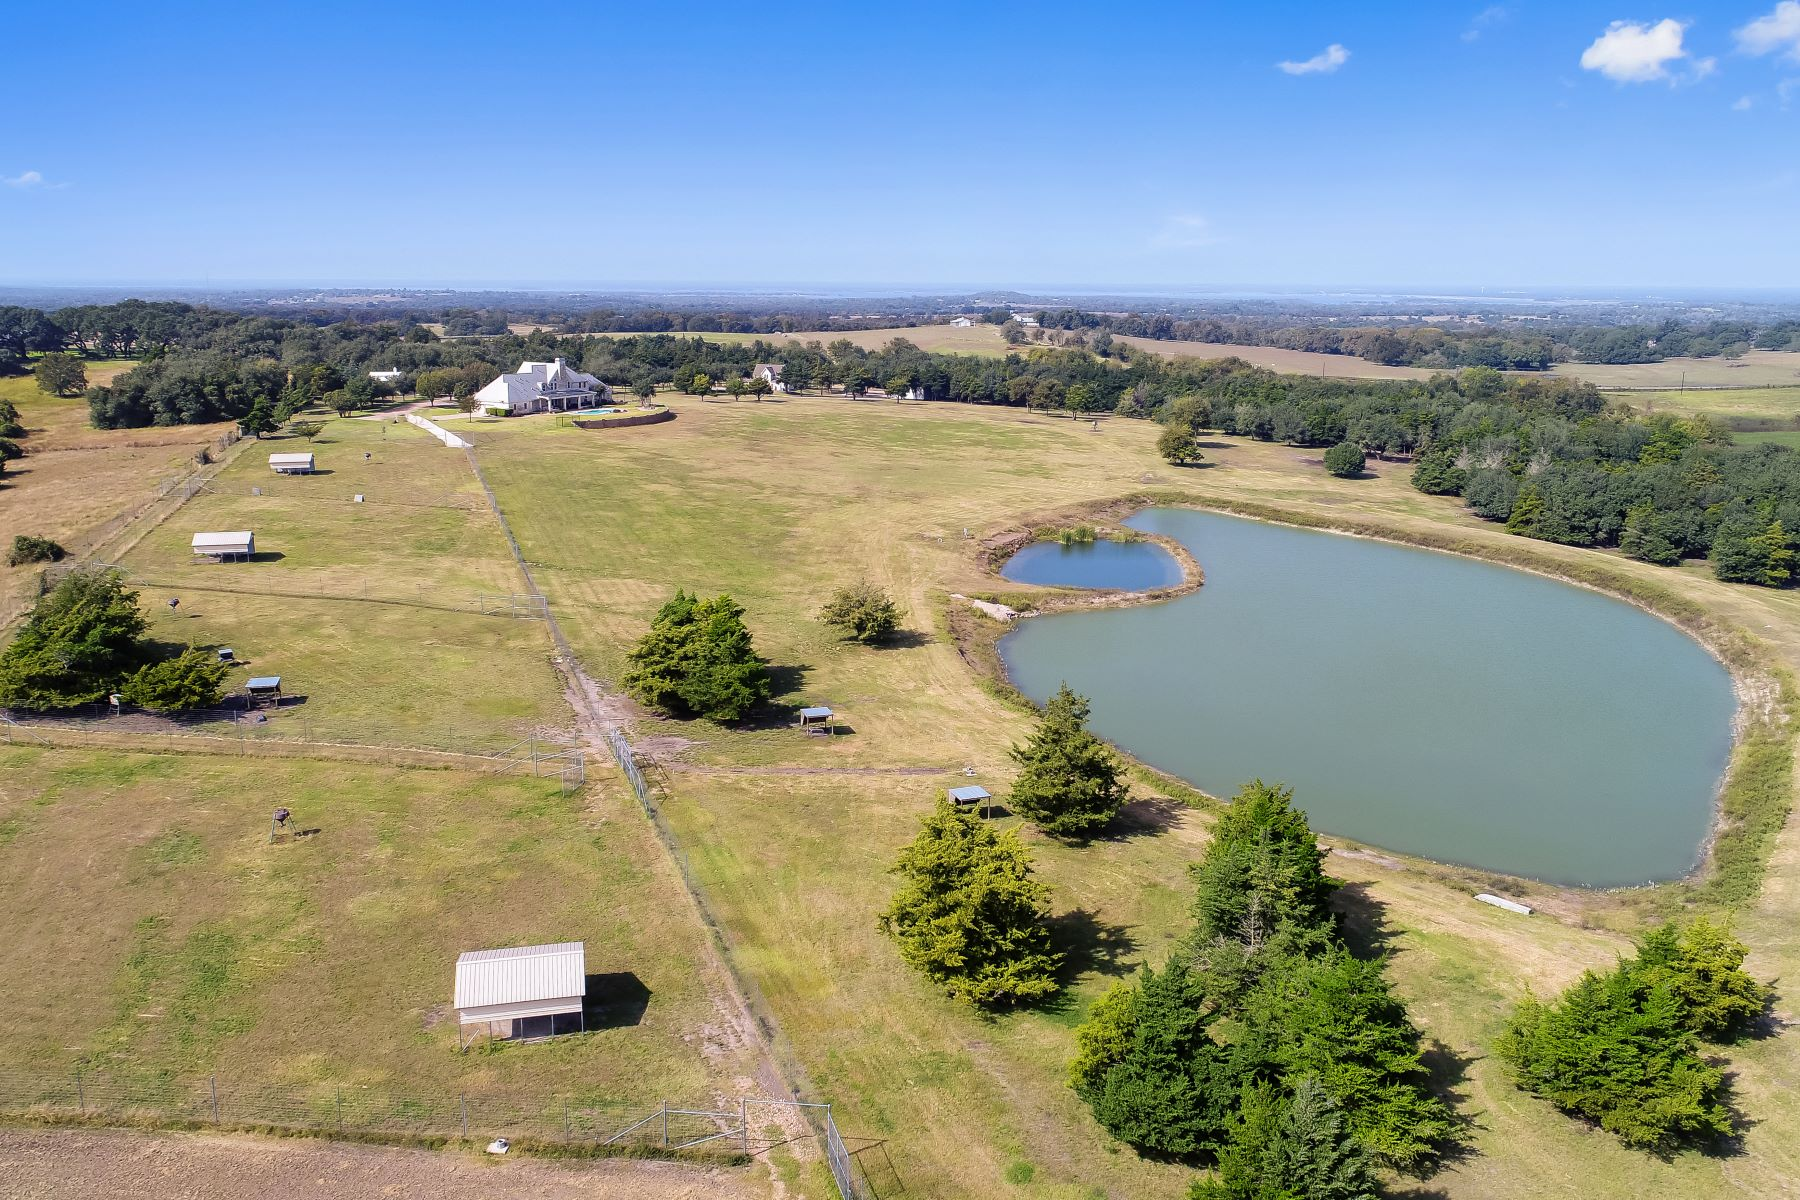 Single Family Home for Sale at 43 Acre Bahia Game Ranch 2805 Farm to Market Road 390 West Brenham, Texas 77833 United States